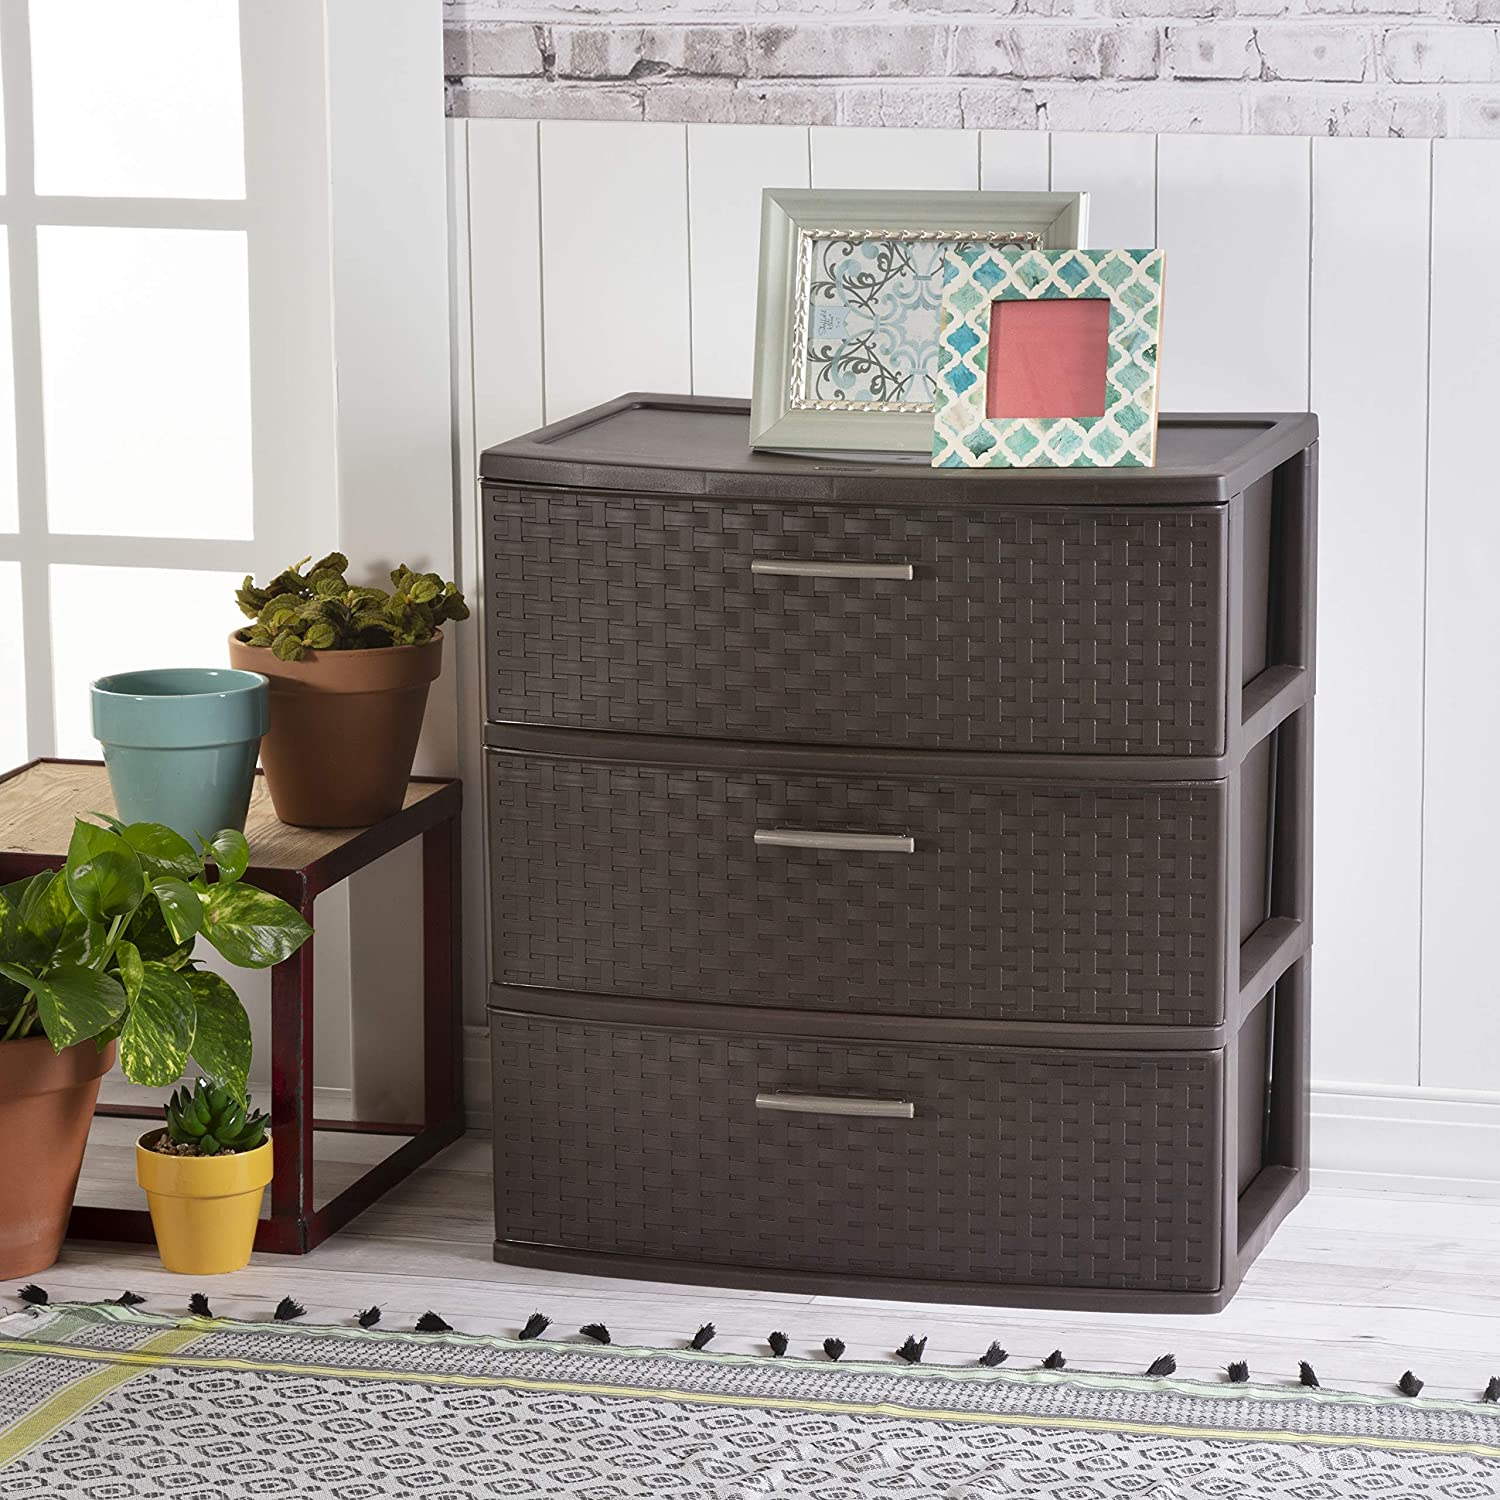 Sterilite 25306P01 3 Drawer Wide Weave Tower: Home & Kitchen